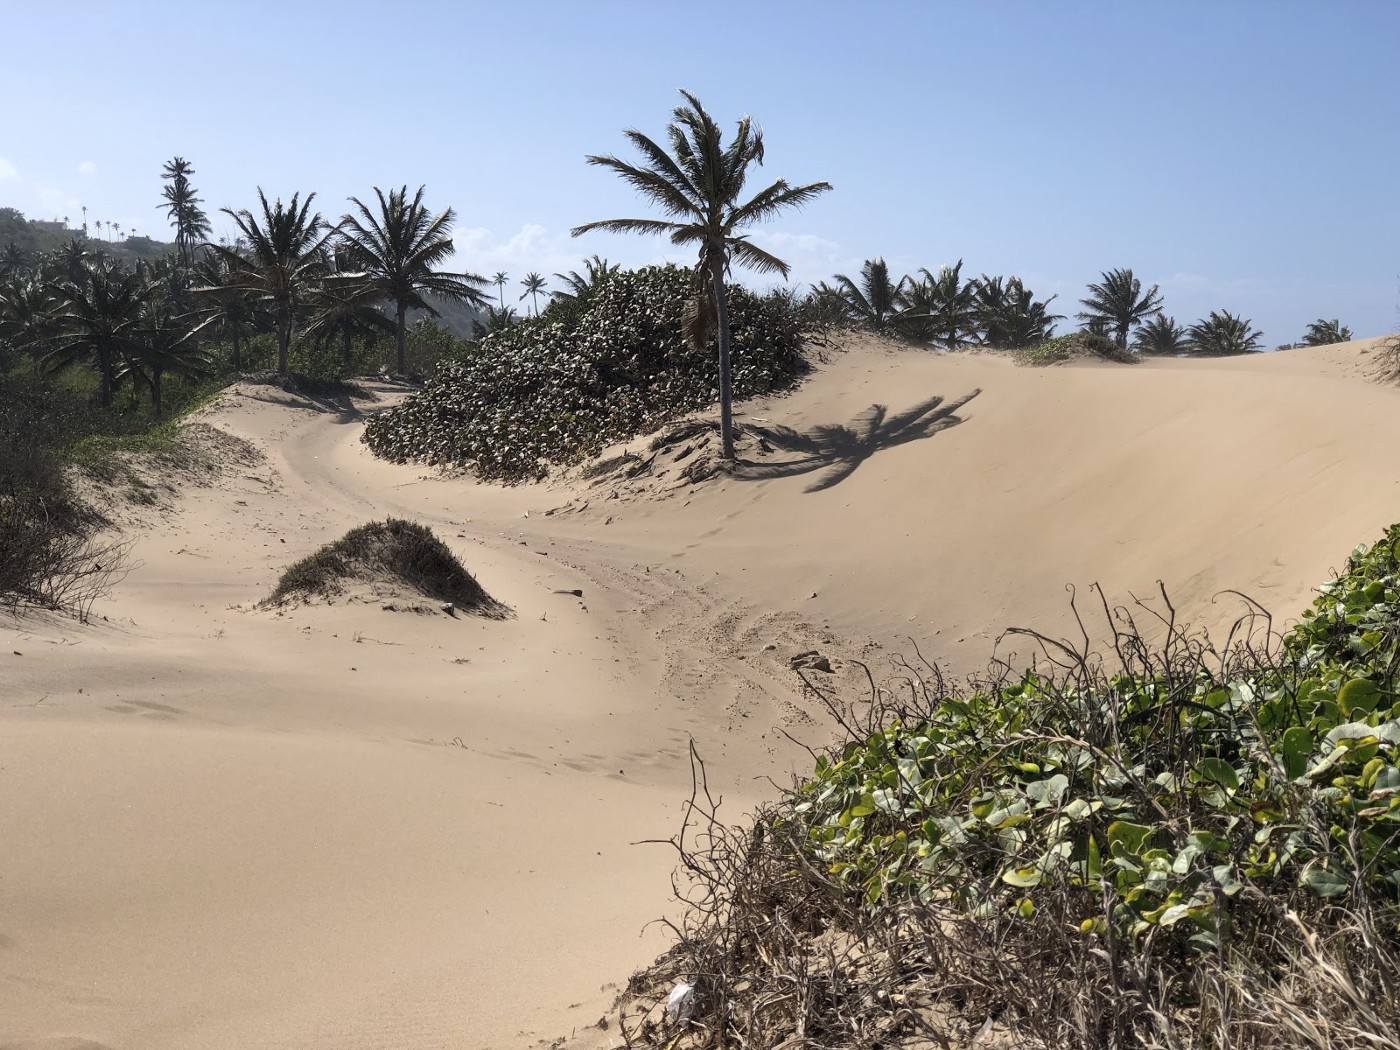 Against the backdrop of a cloudless blue sky, the sun washes over an enormous dune and the handful of palm trees that stabilize it.